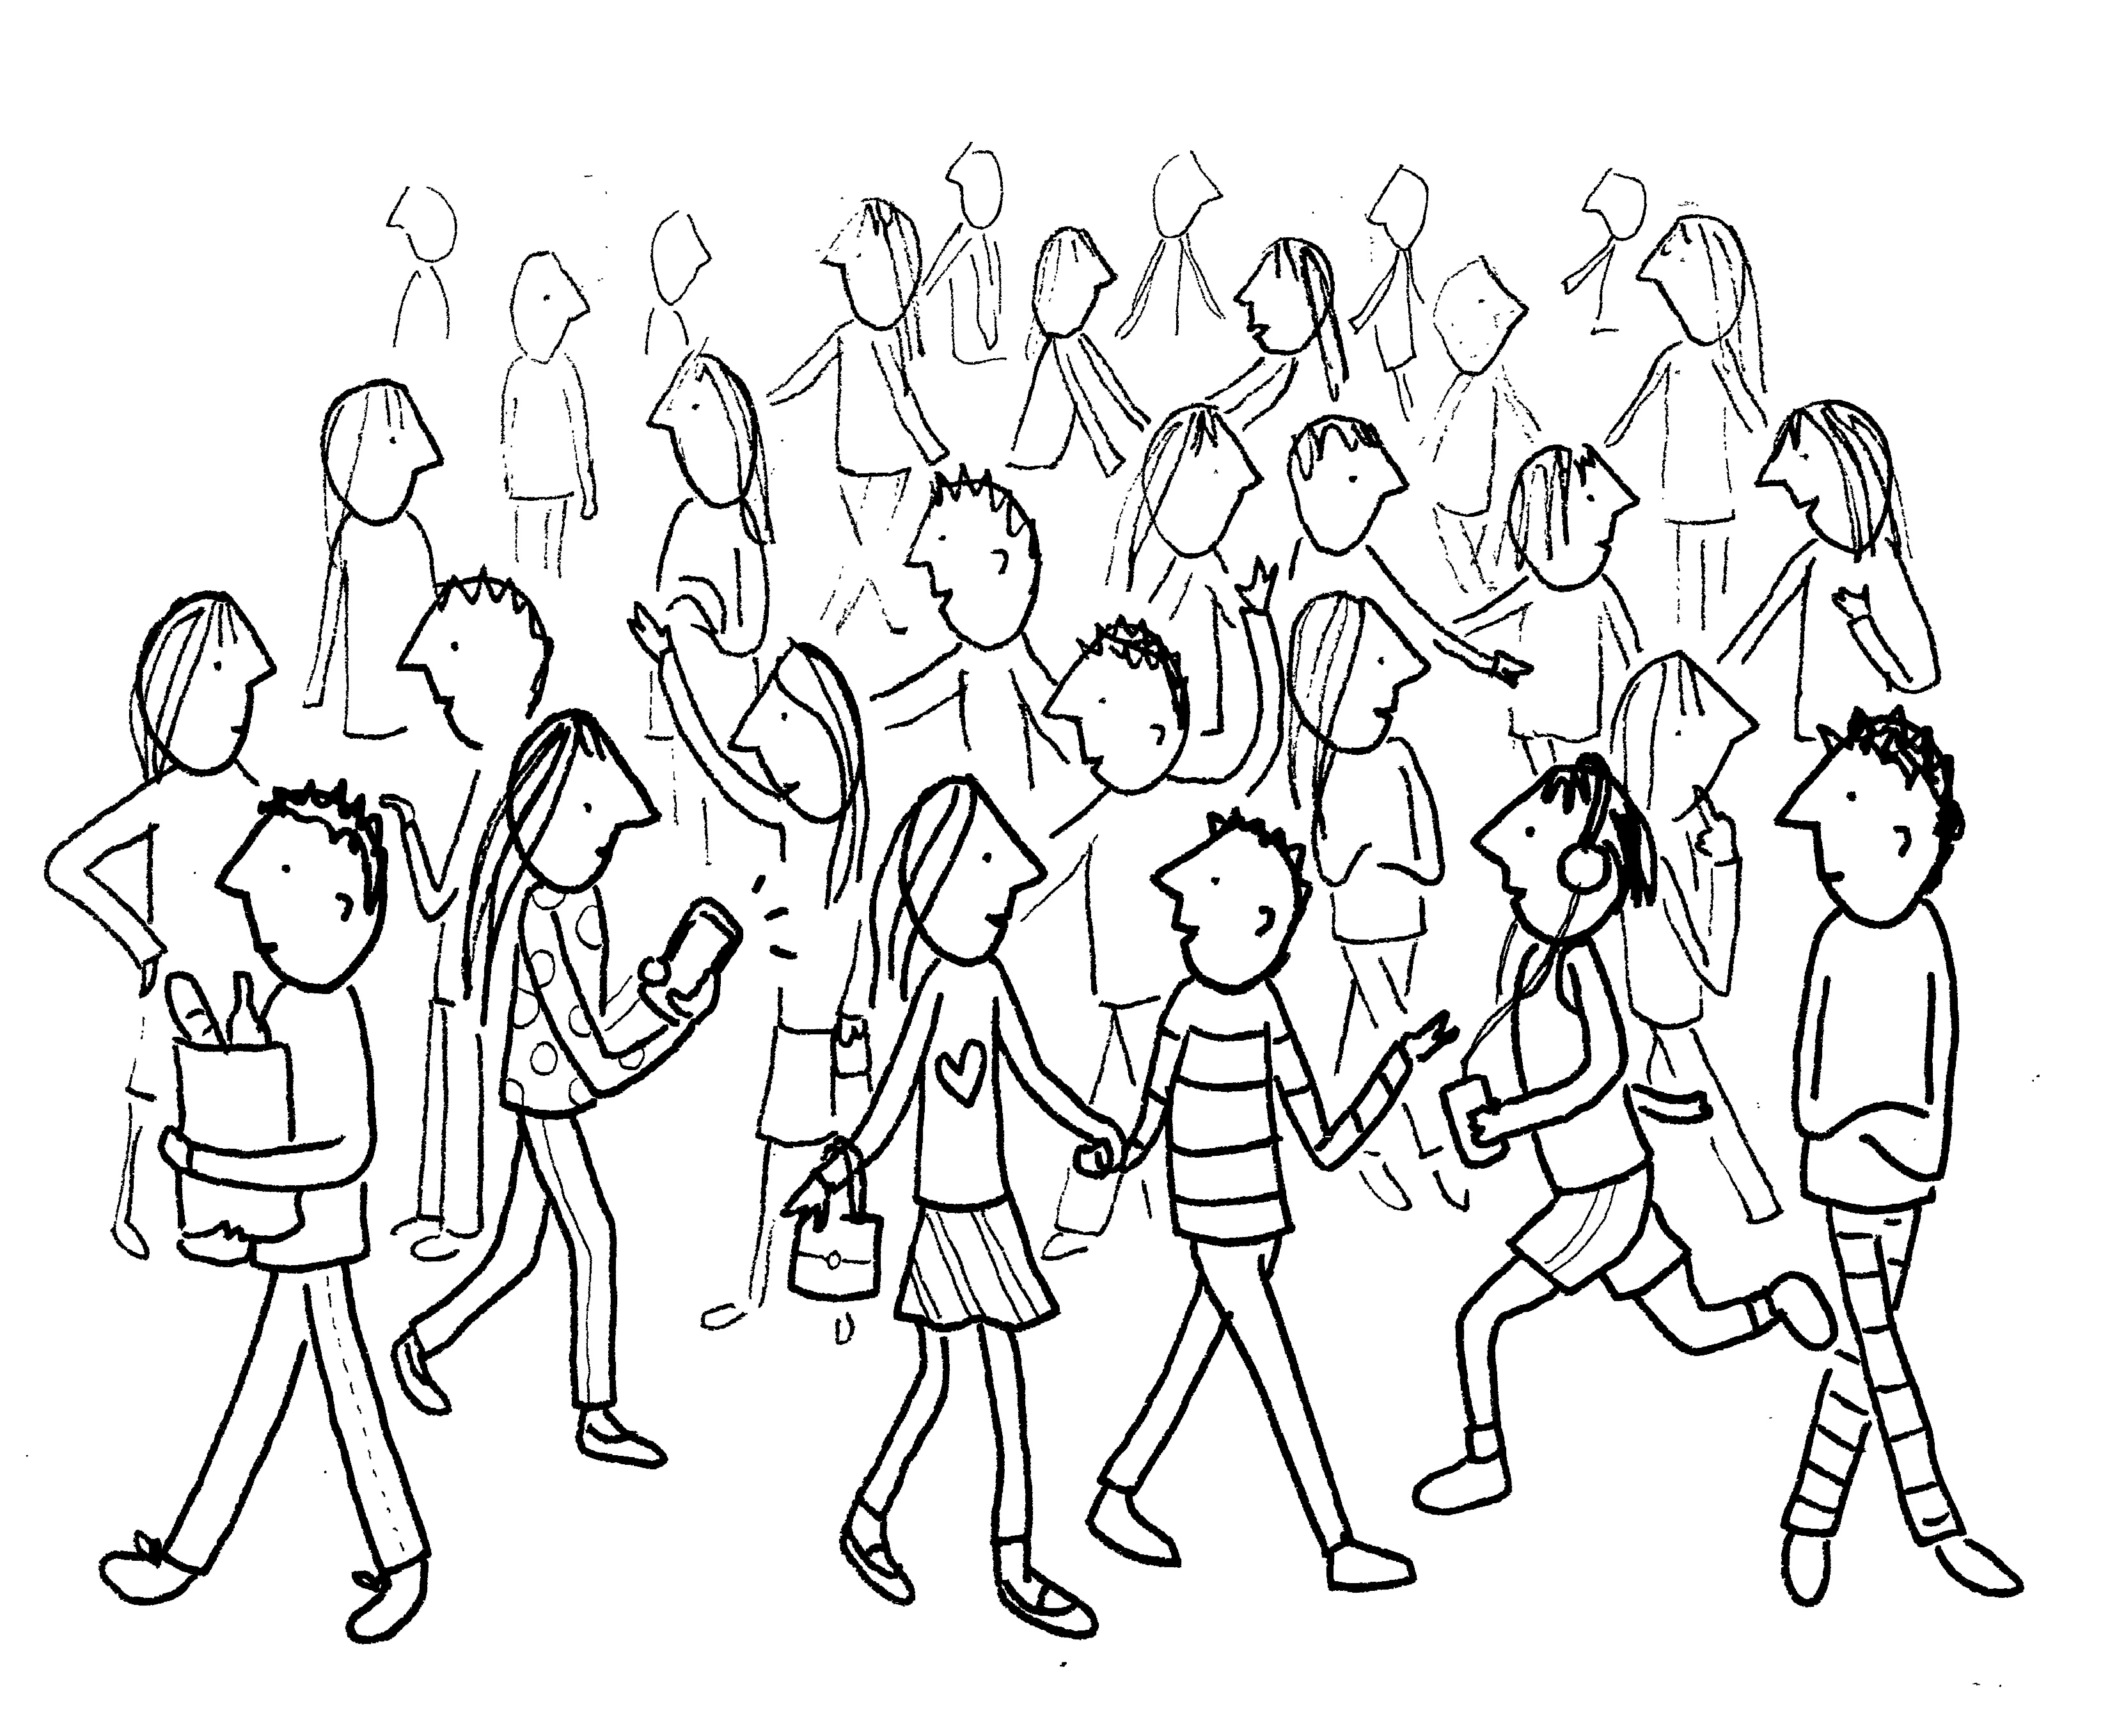 3310x2714 How To Draw A Crowd Of People In 3 Steps